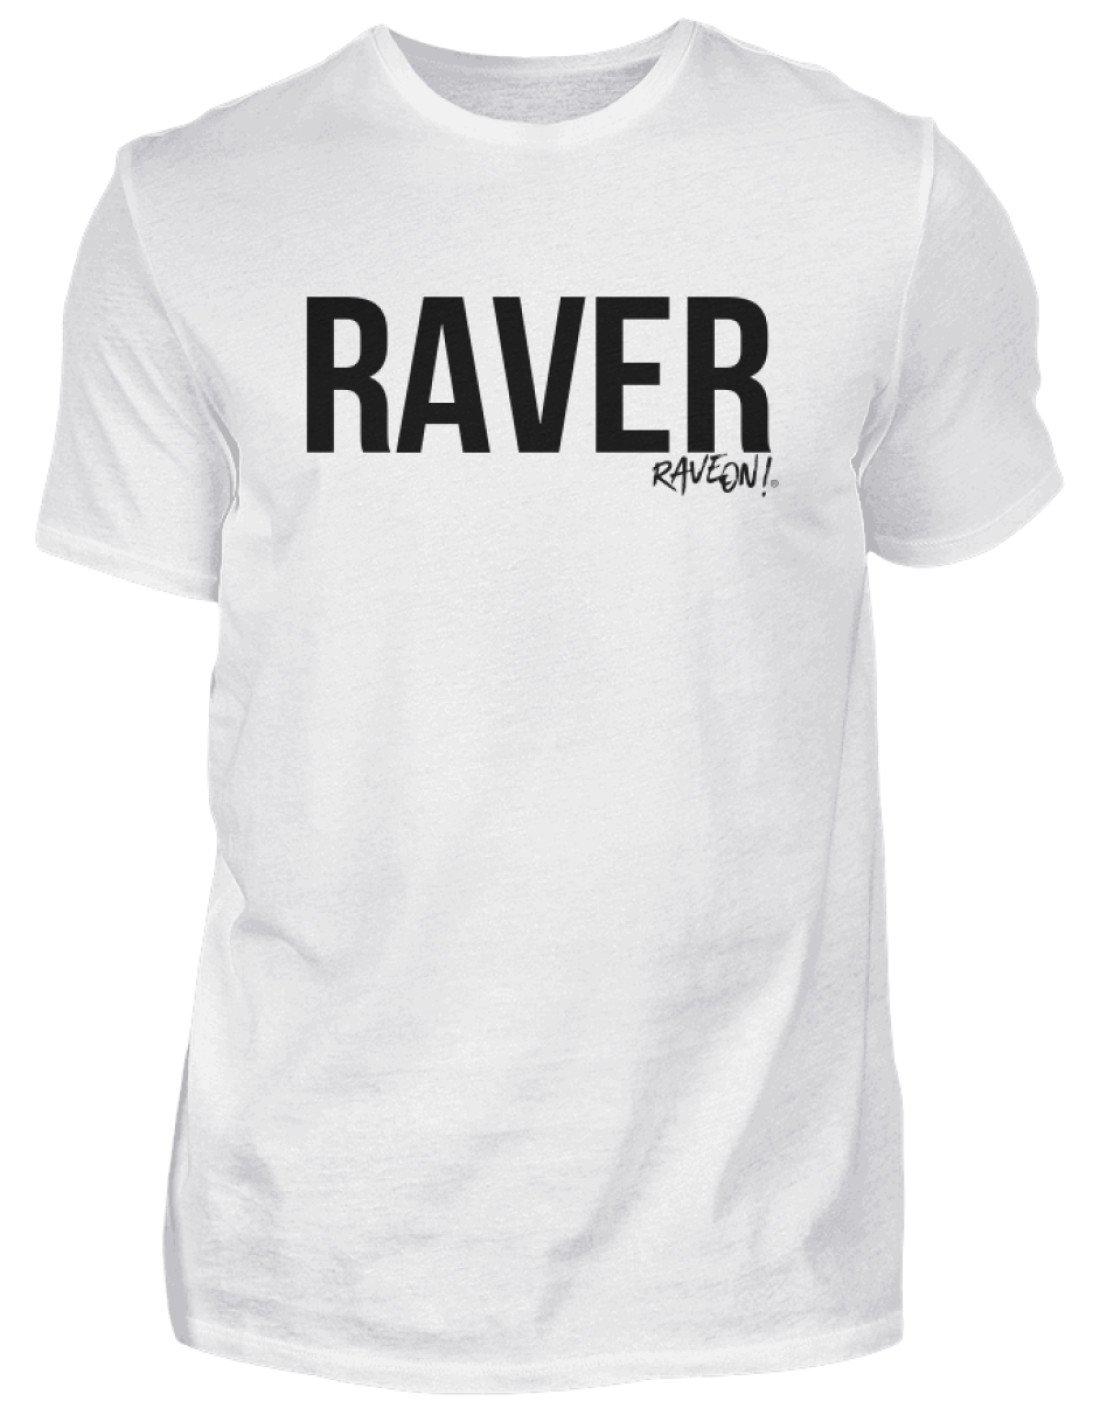 "Stylisches ""Raver"" Shirt-Weiß-S-Rave-On! I www.rave-on.shop I Deine Rave & Techno Szene Shop I black, cool, cotton, grey, i heart raves, letter, print, rave, rave clothes, rave essentials, rave gear, rave wear, raver, schlicht, schwarz, shirt, t-shirt, t-shirts, top, tshirt, weiß, white - Sexy Festival Streetwear , Clubwear & Raver Style"